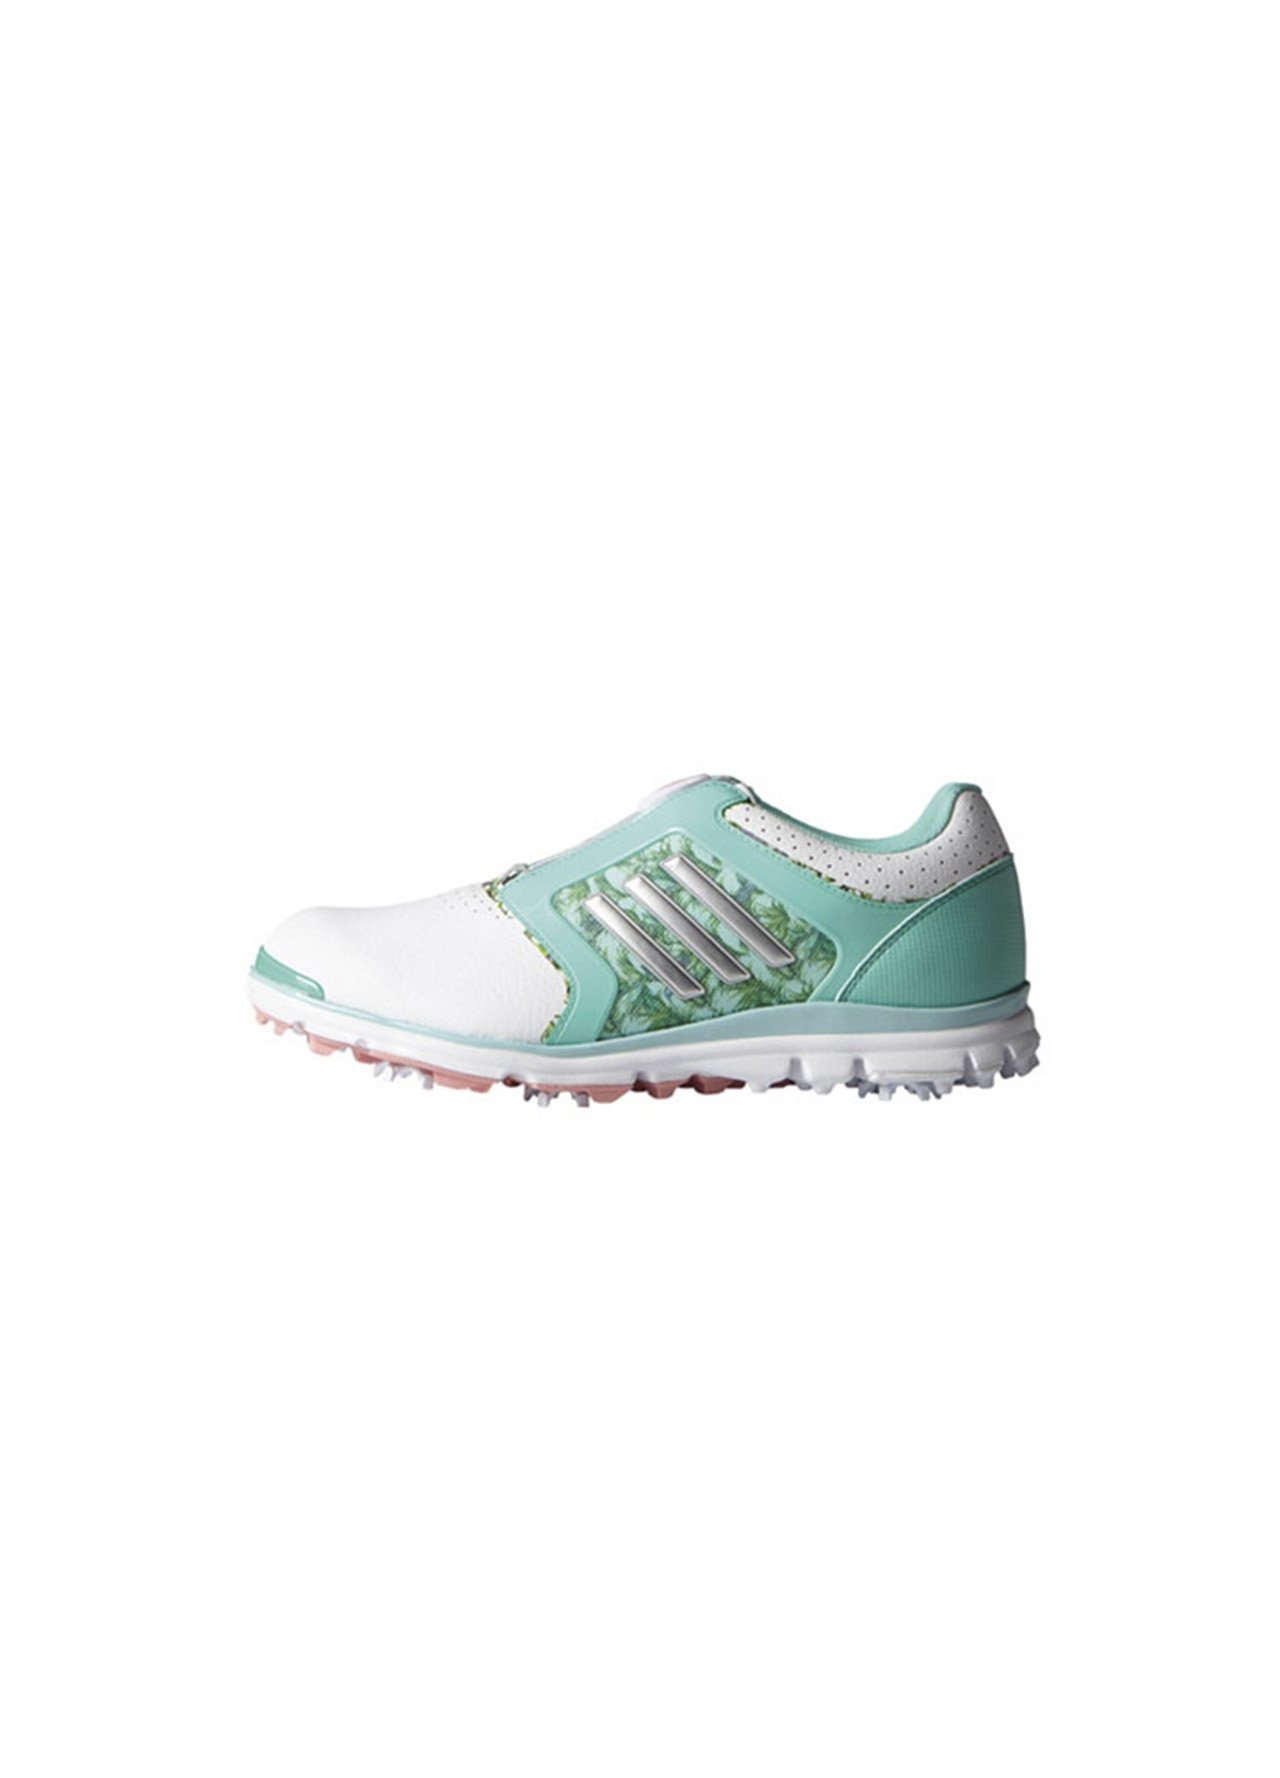 Ladies Clothing - Ladies Shoes - Whitegreen Adidas Ladies Adistar ... b5a6b16d2